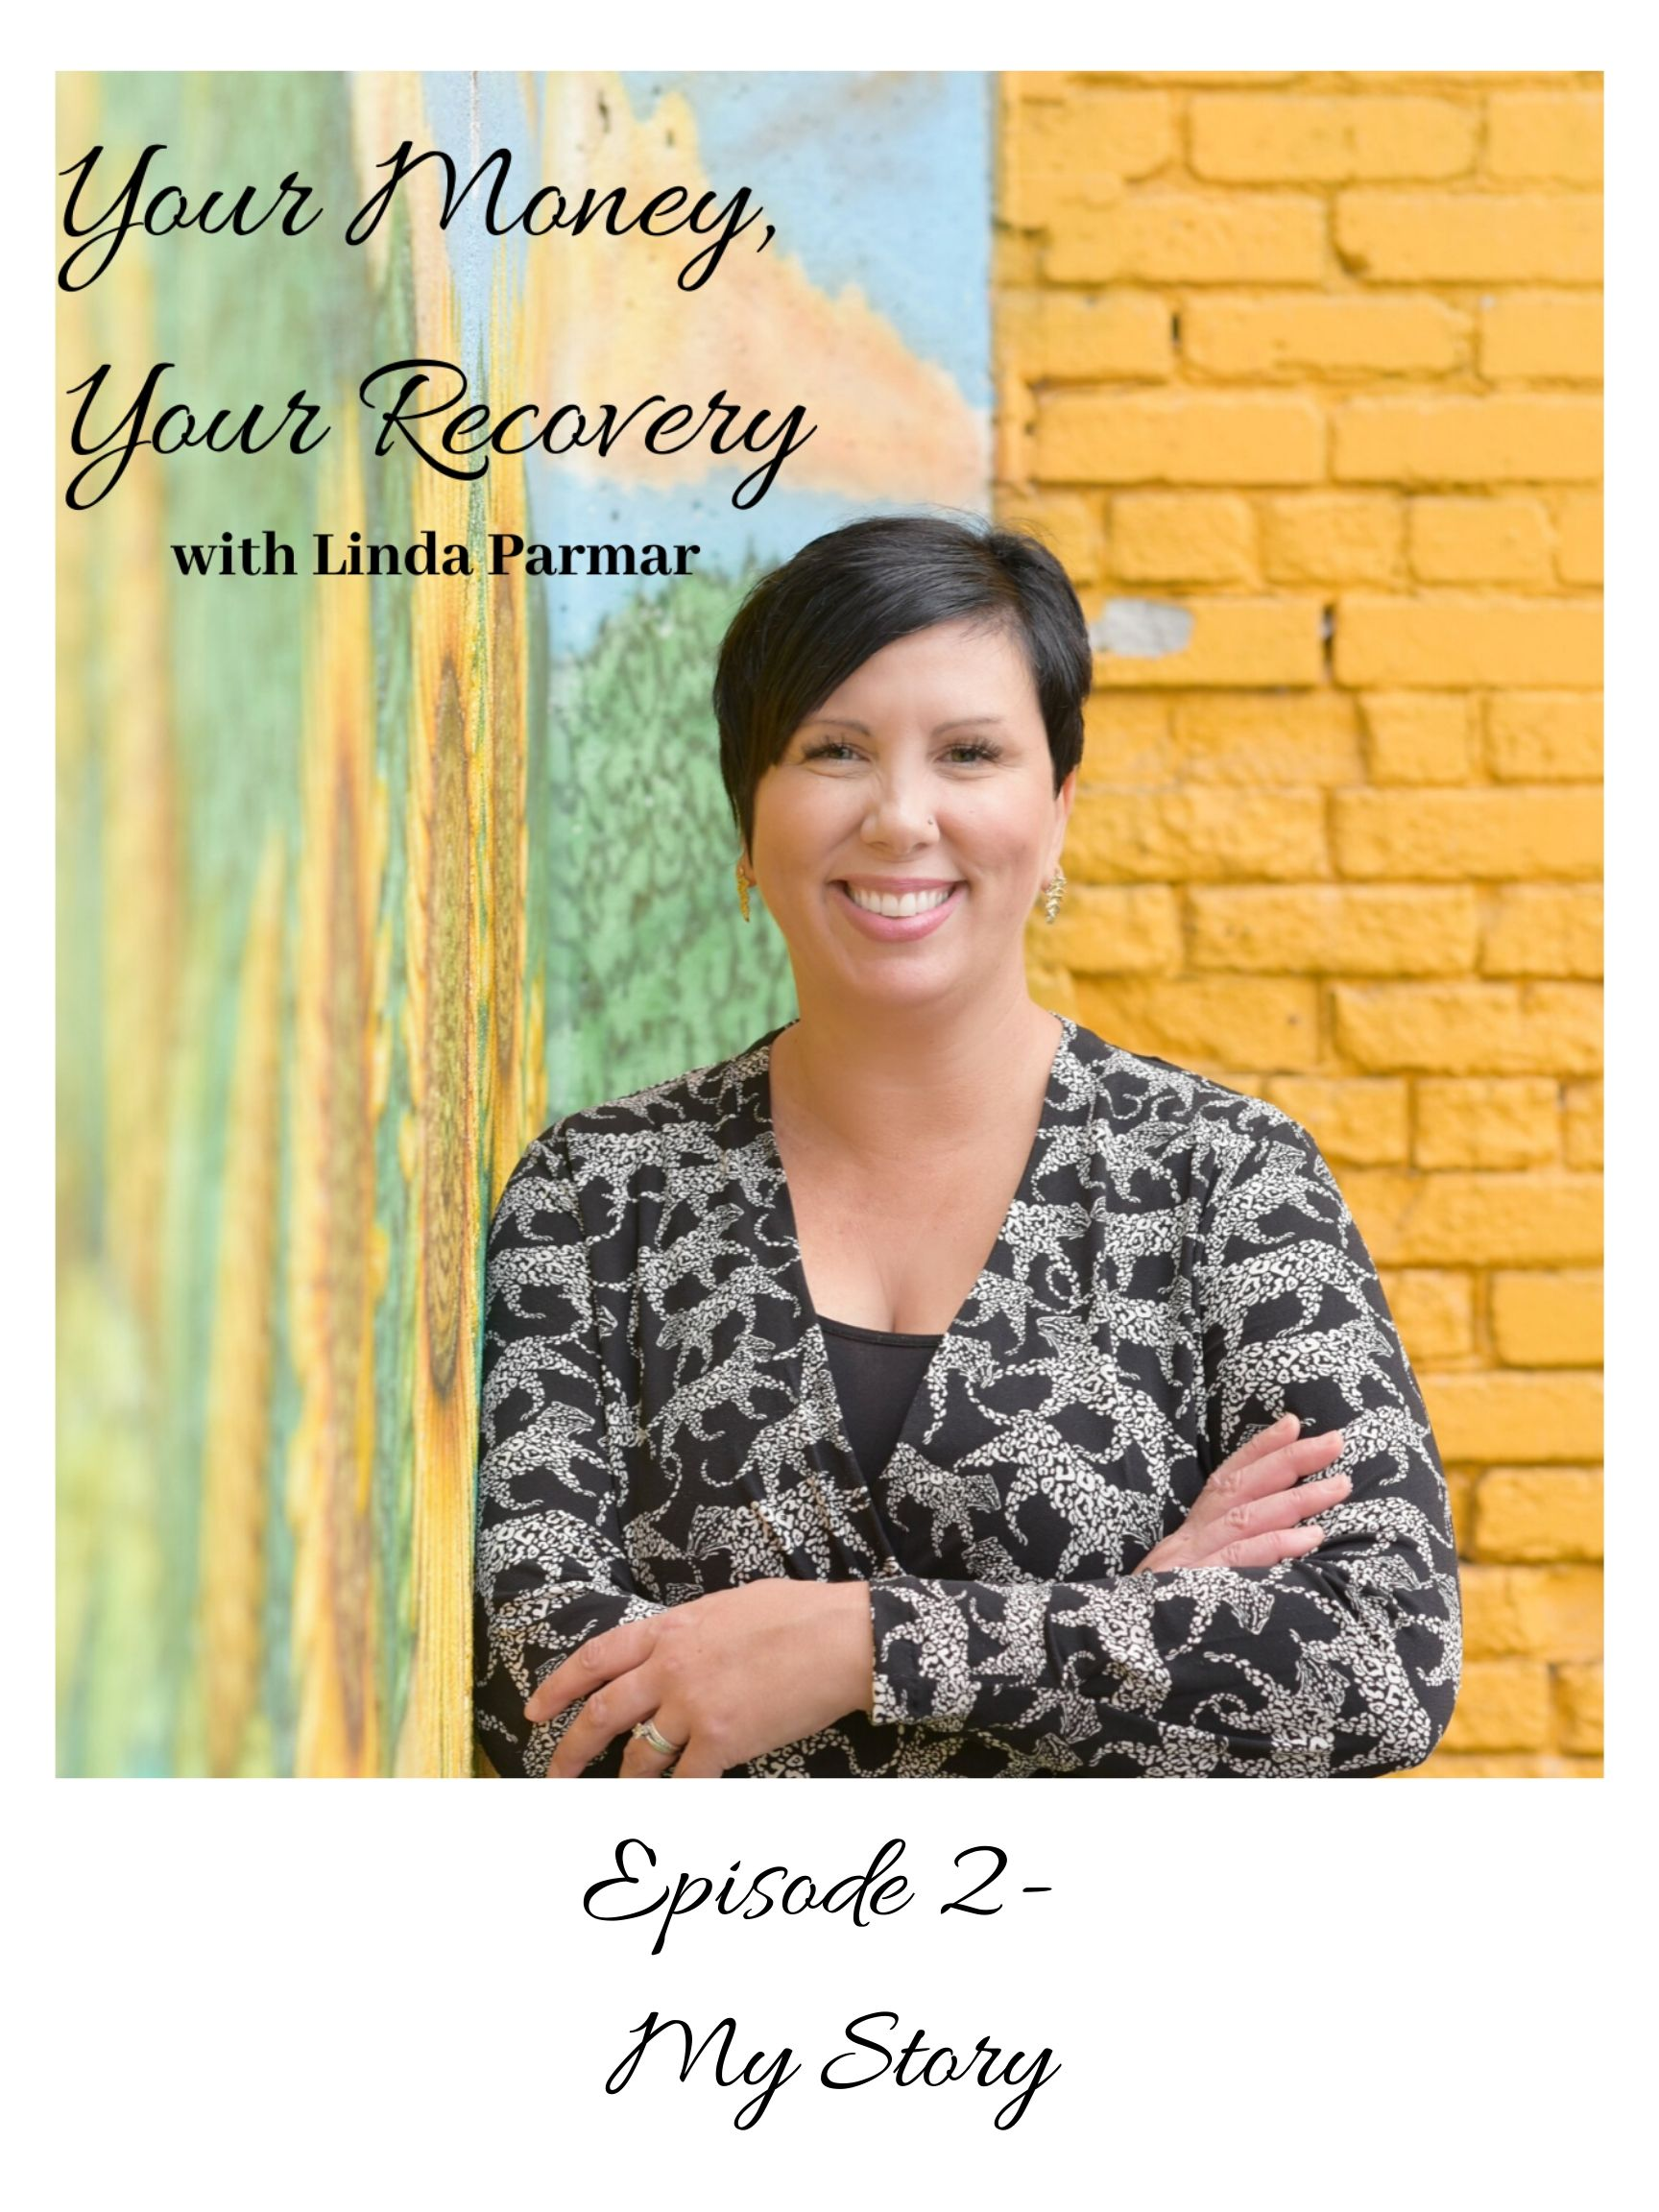 Episode 2 - Your Money, You're Recovery, My Story